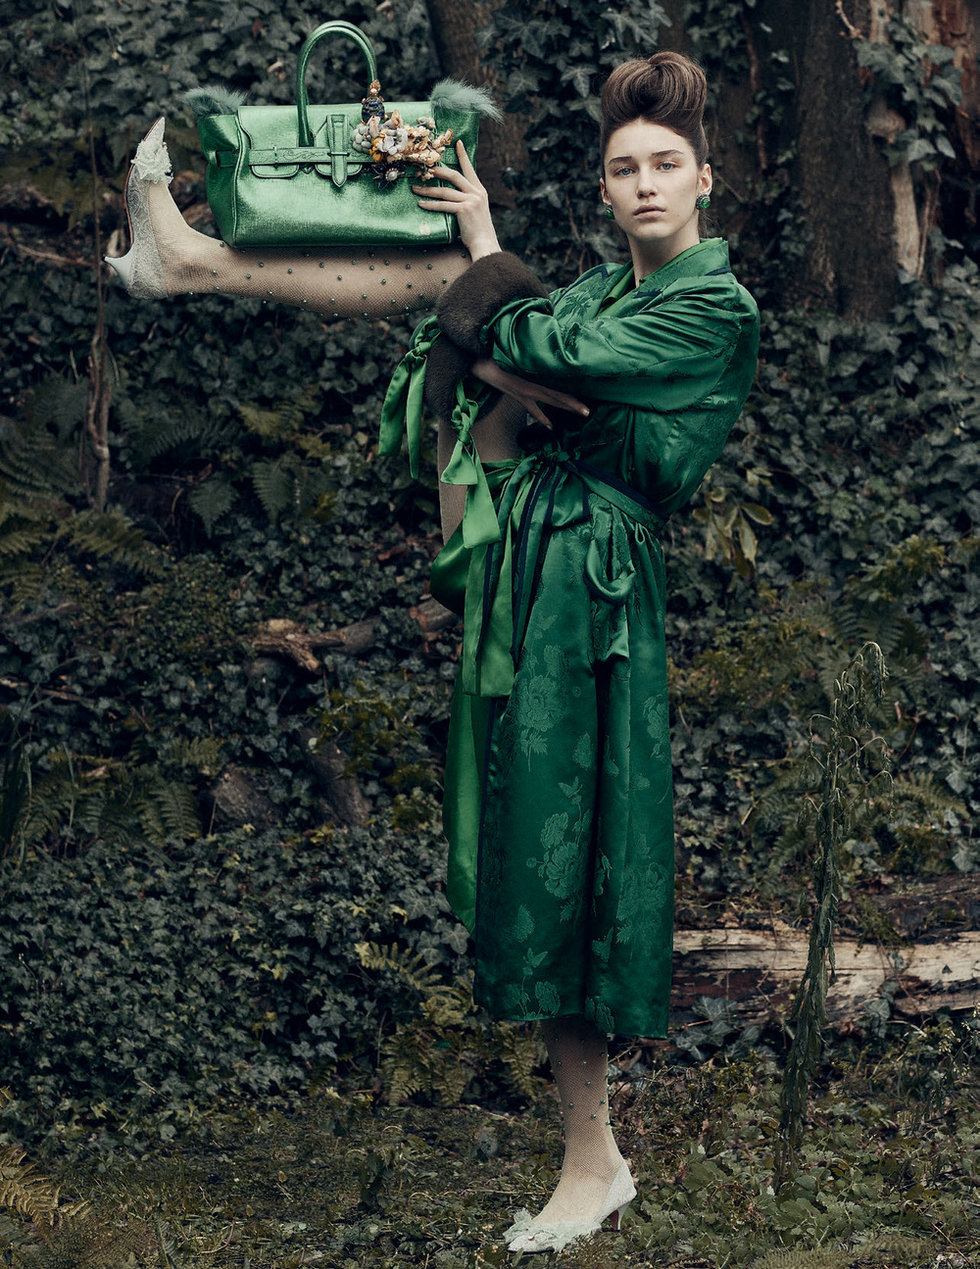 A model in a green dress holds up a purse with her shin, her leg lifted up to her ear